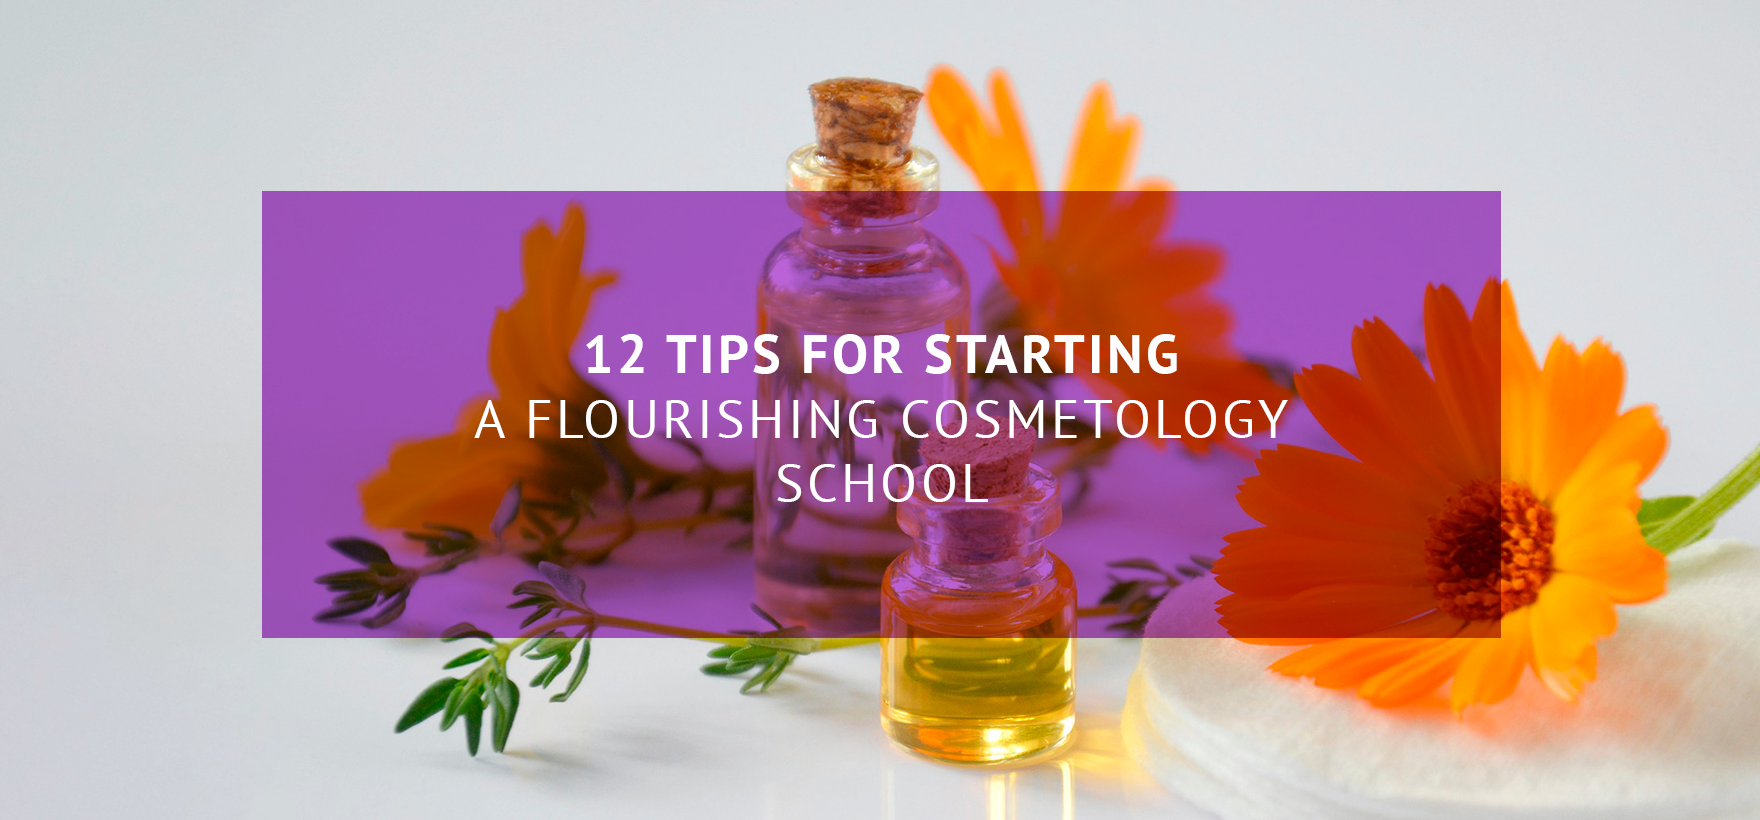 12 Tips for Starting a Flourishing Cosmetology School